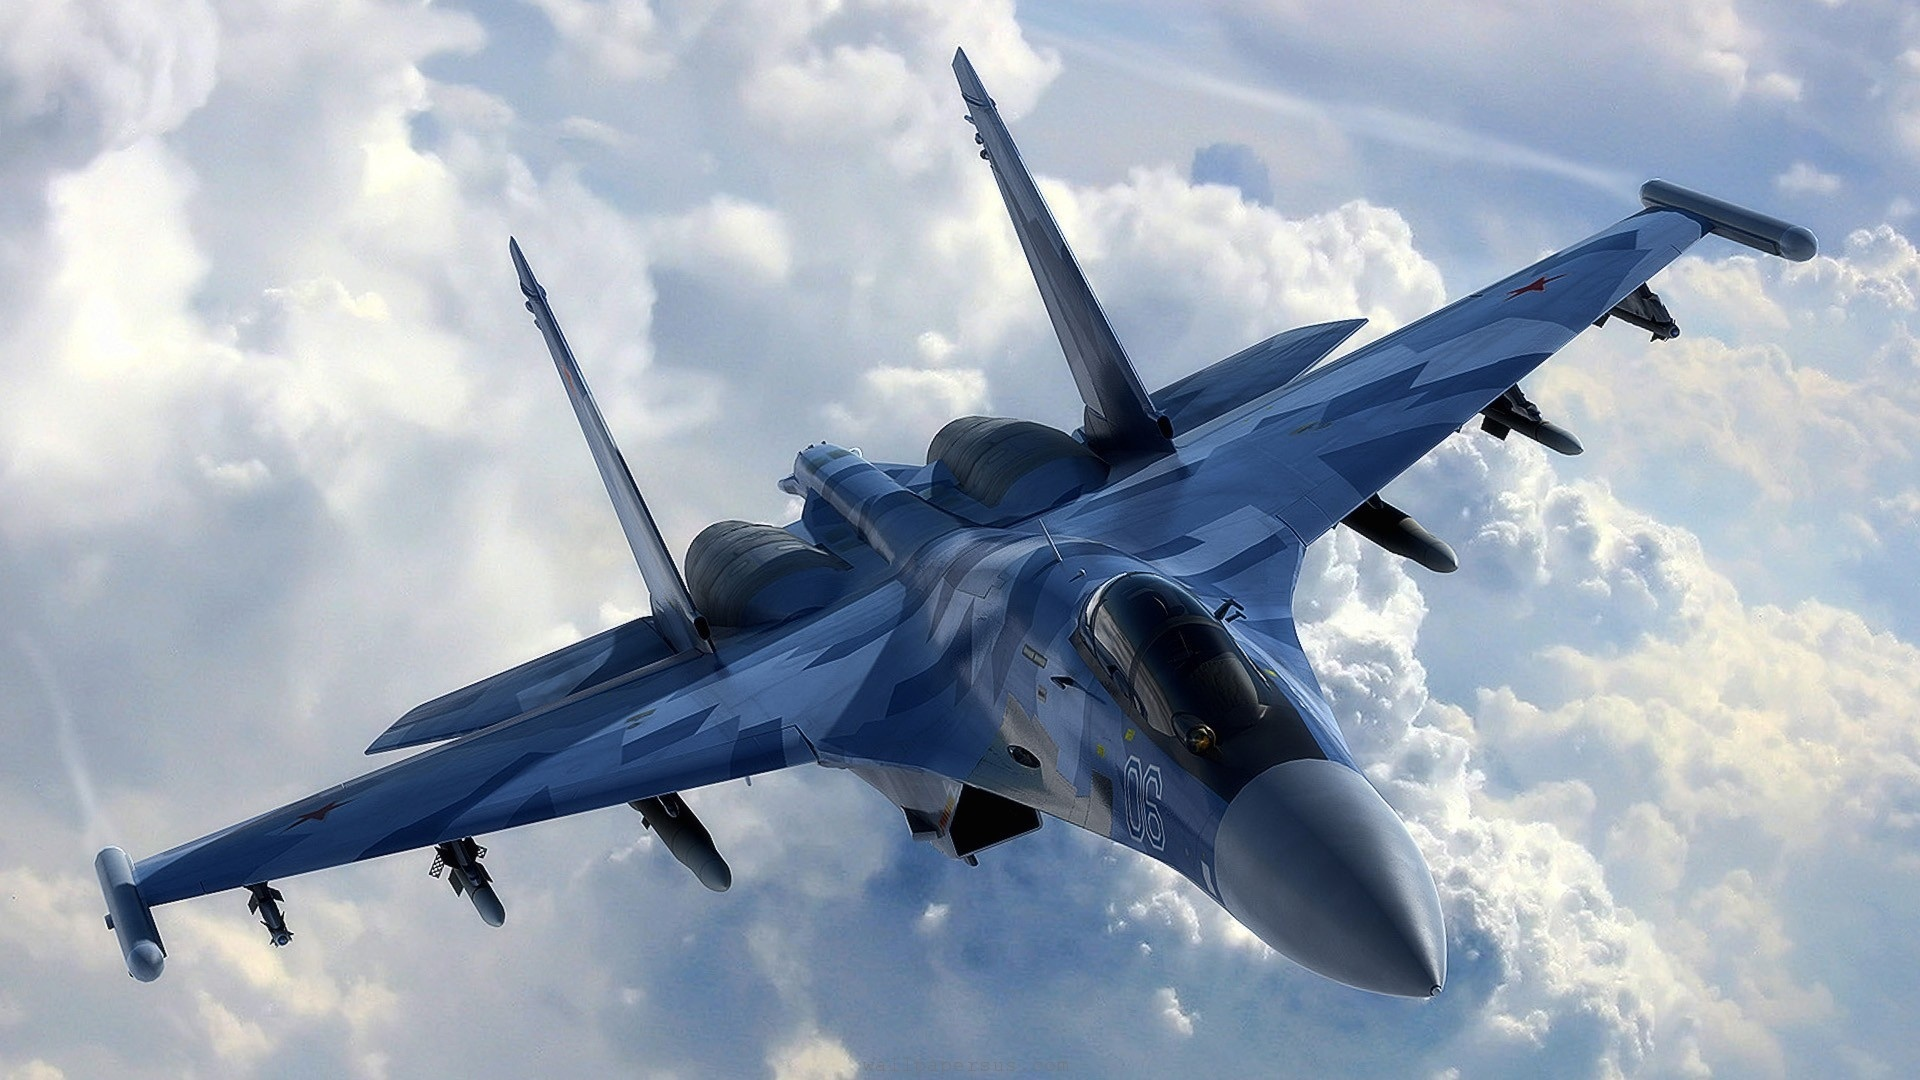 Russian Su-35 vs American F-22 Raptor